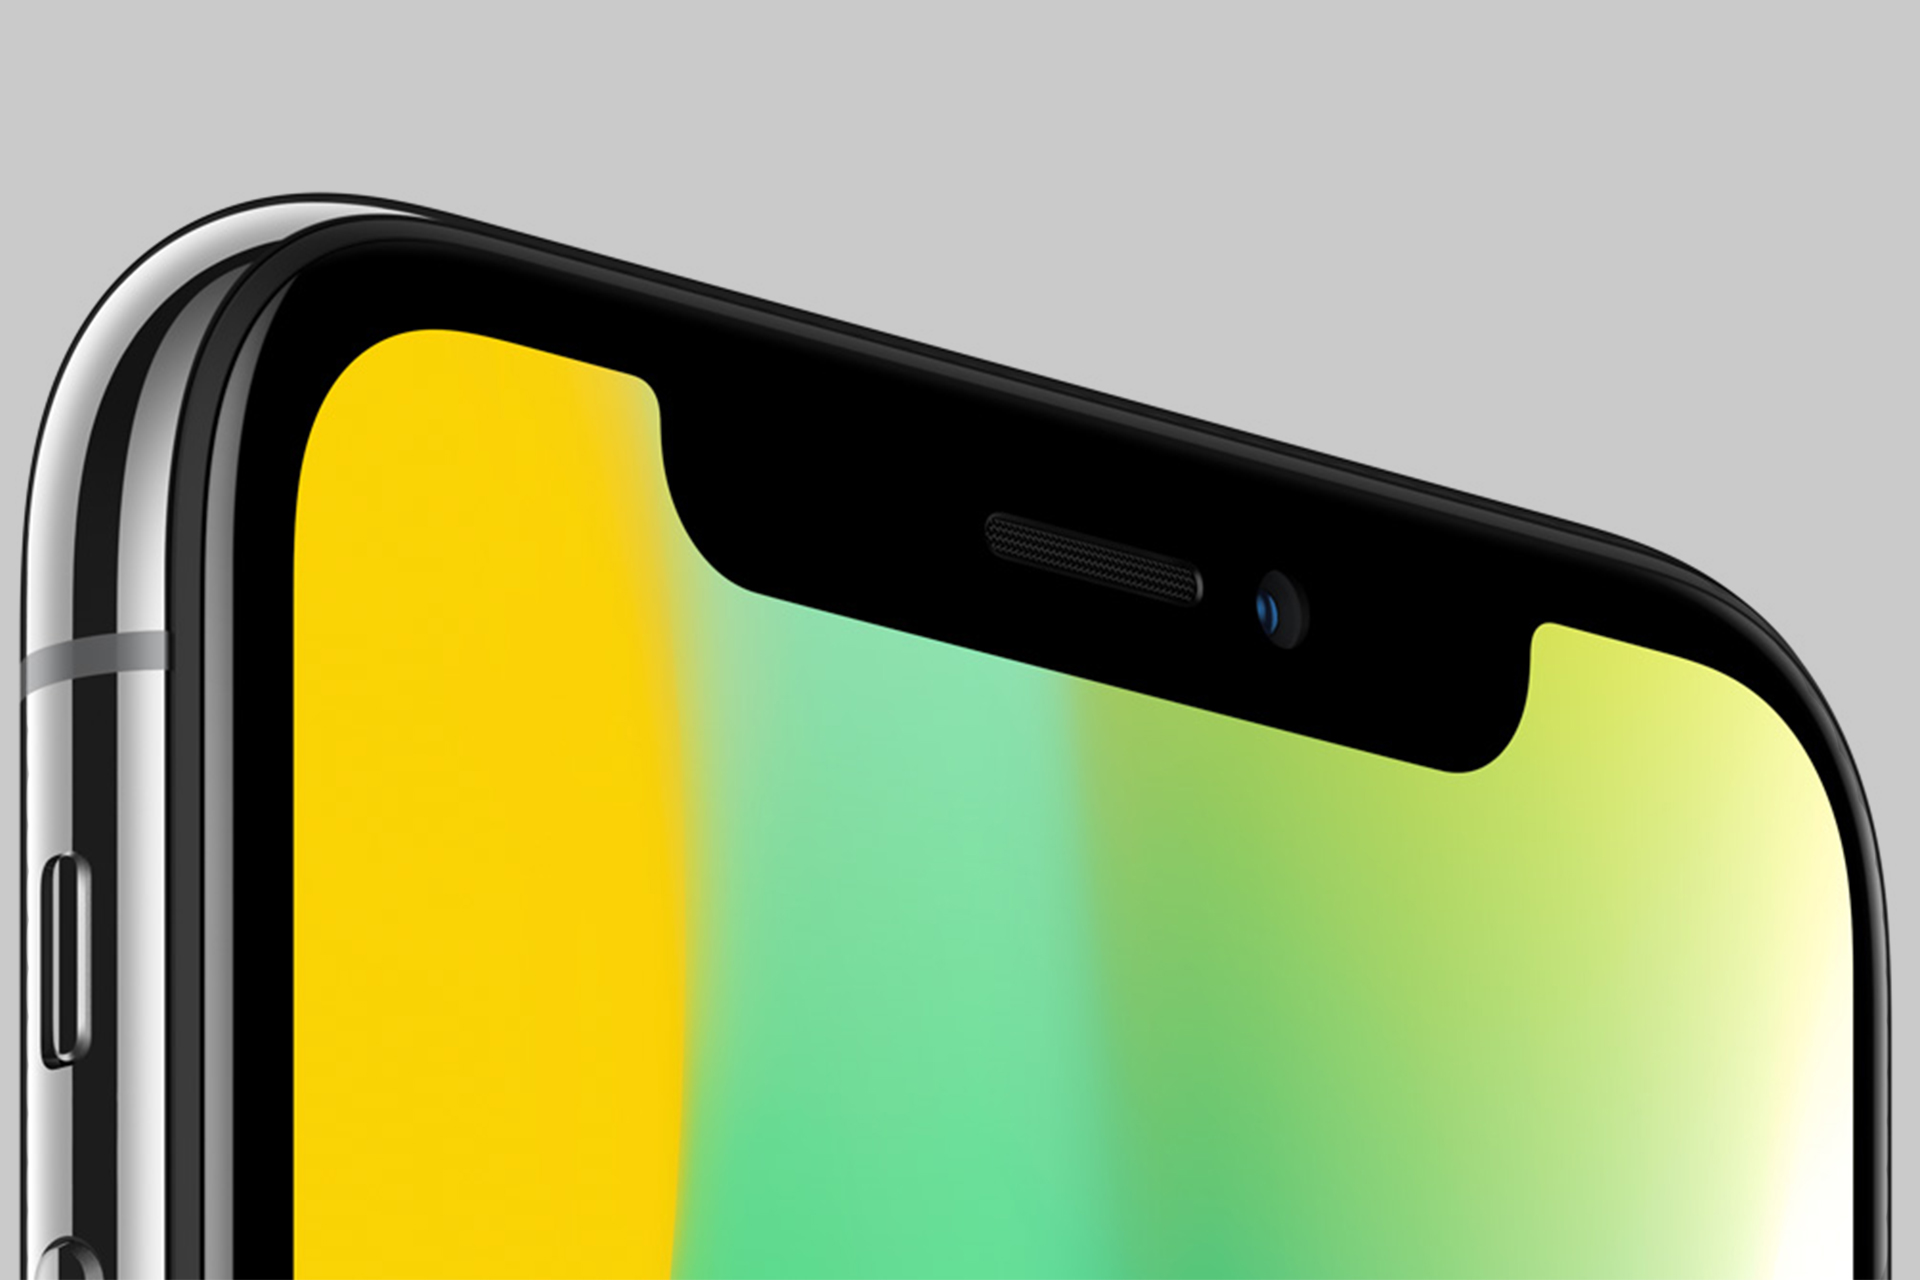 iPhone X Mockup Download